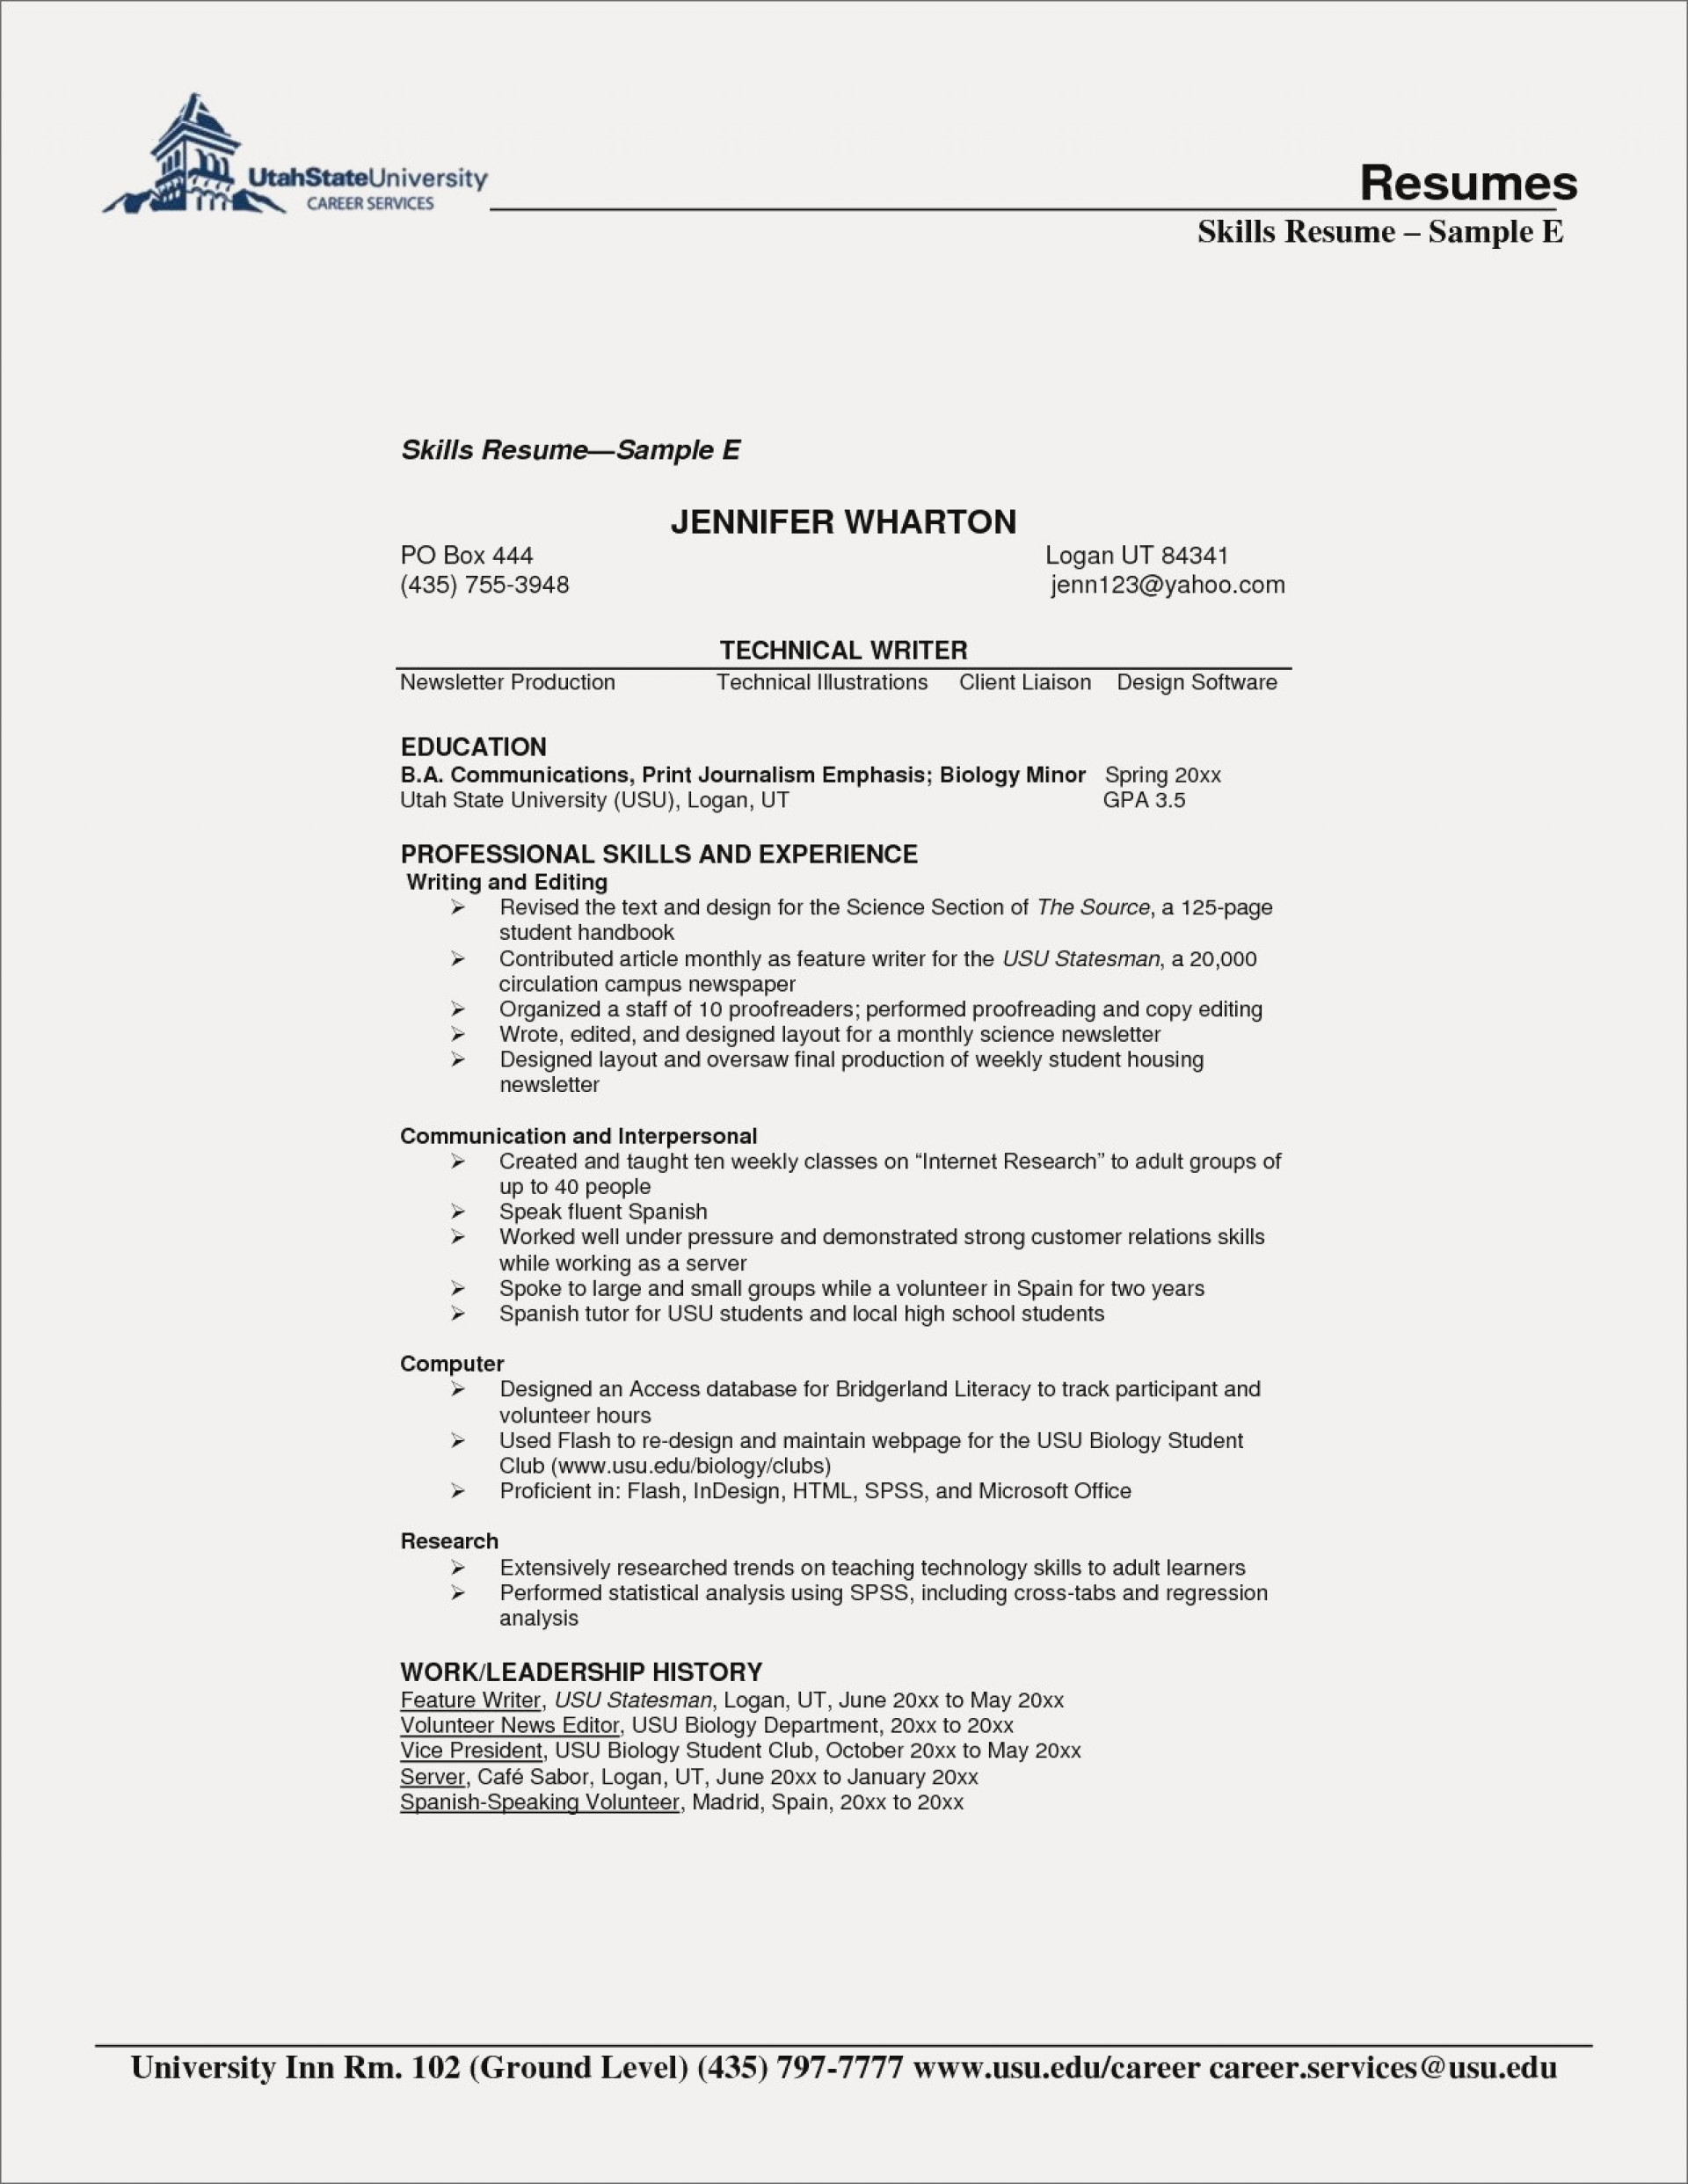 012 Biology Research Paper Lovely Resume Skills Section Example Save Puter Unique Staggering Sample Outline Cell Topics 1920